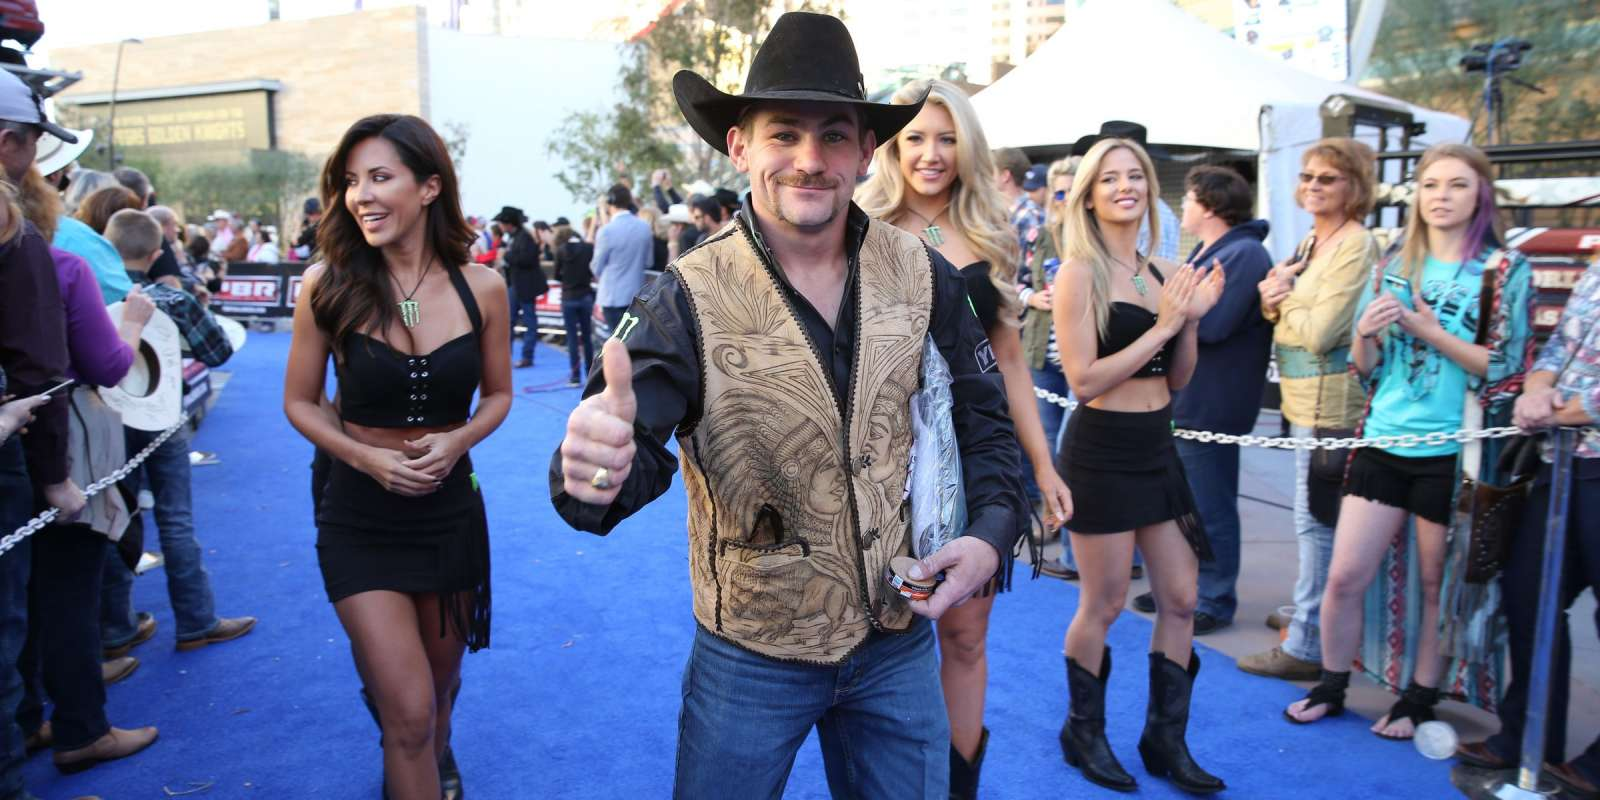 Chase Outlaw on the Ford Blue Carpet during the third round of the Built Ford Tough series PBR World Finals